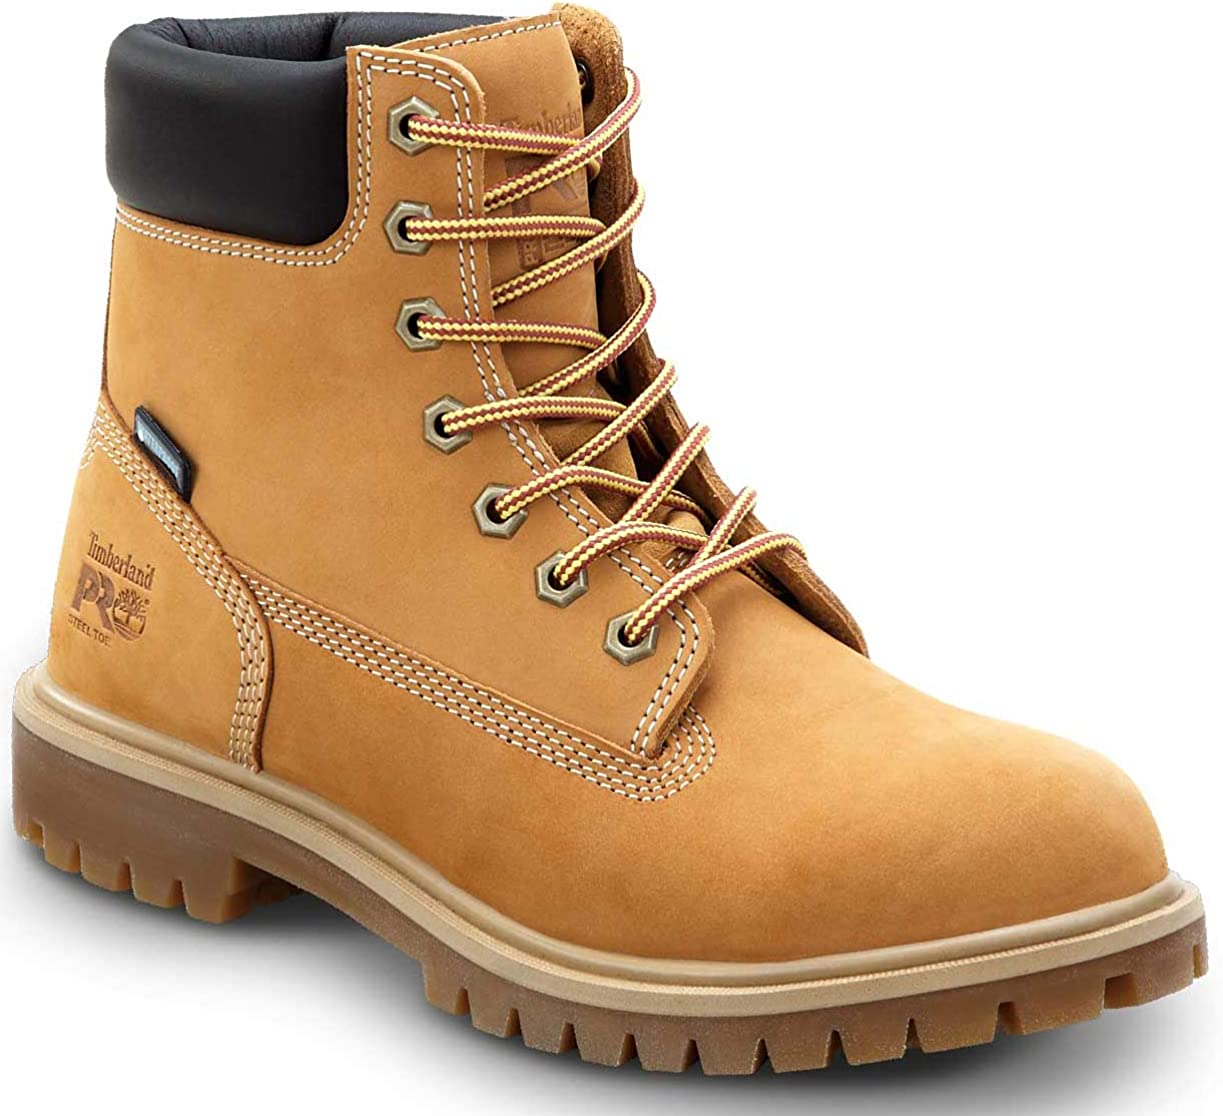 Timberland PRO 6IN Direct Attach Women's, Wheat, Steel Toe, EH, MaxTrax Slip Resistant, WP/Insulated Boot